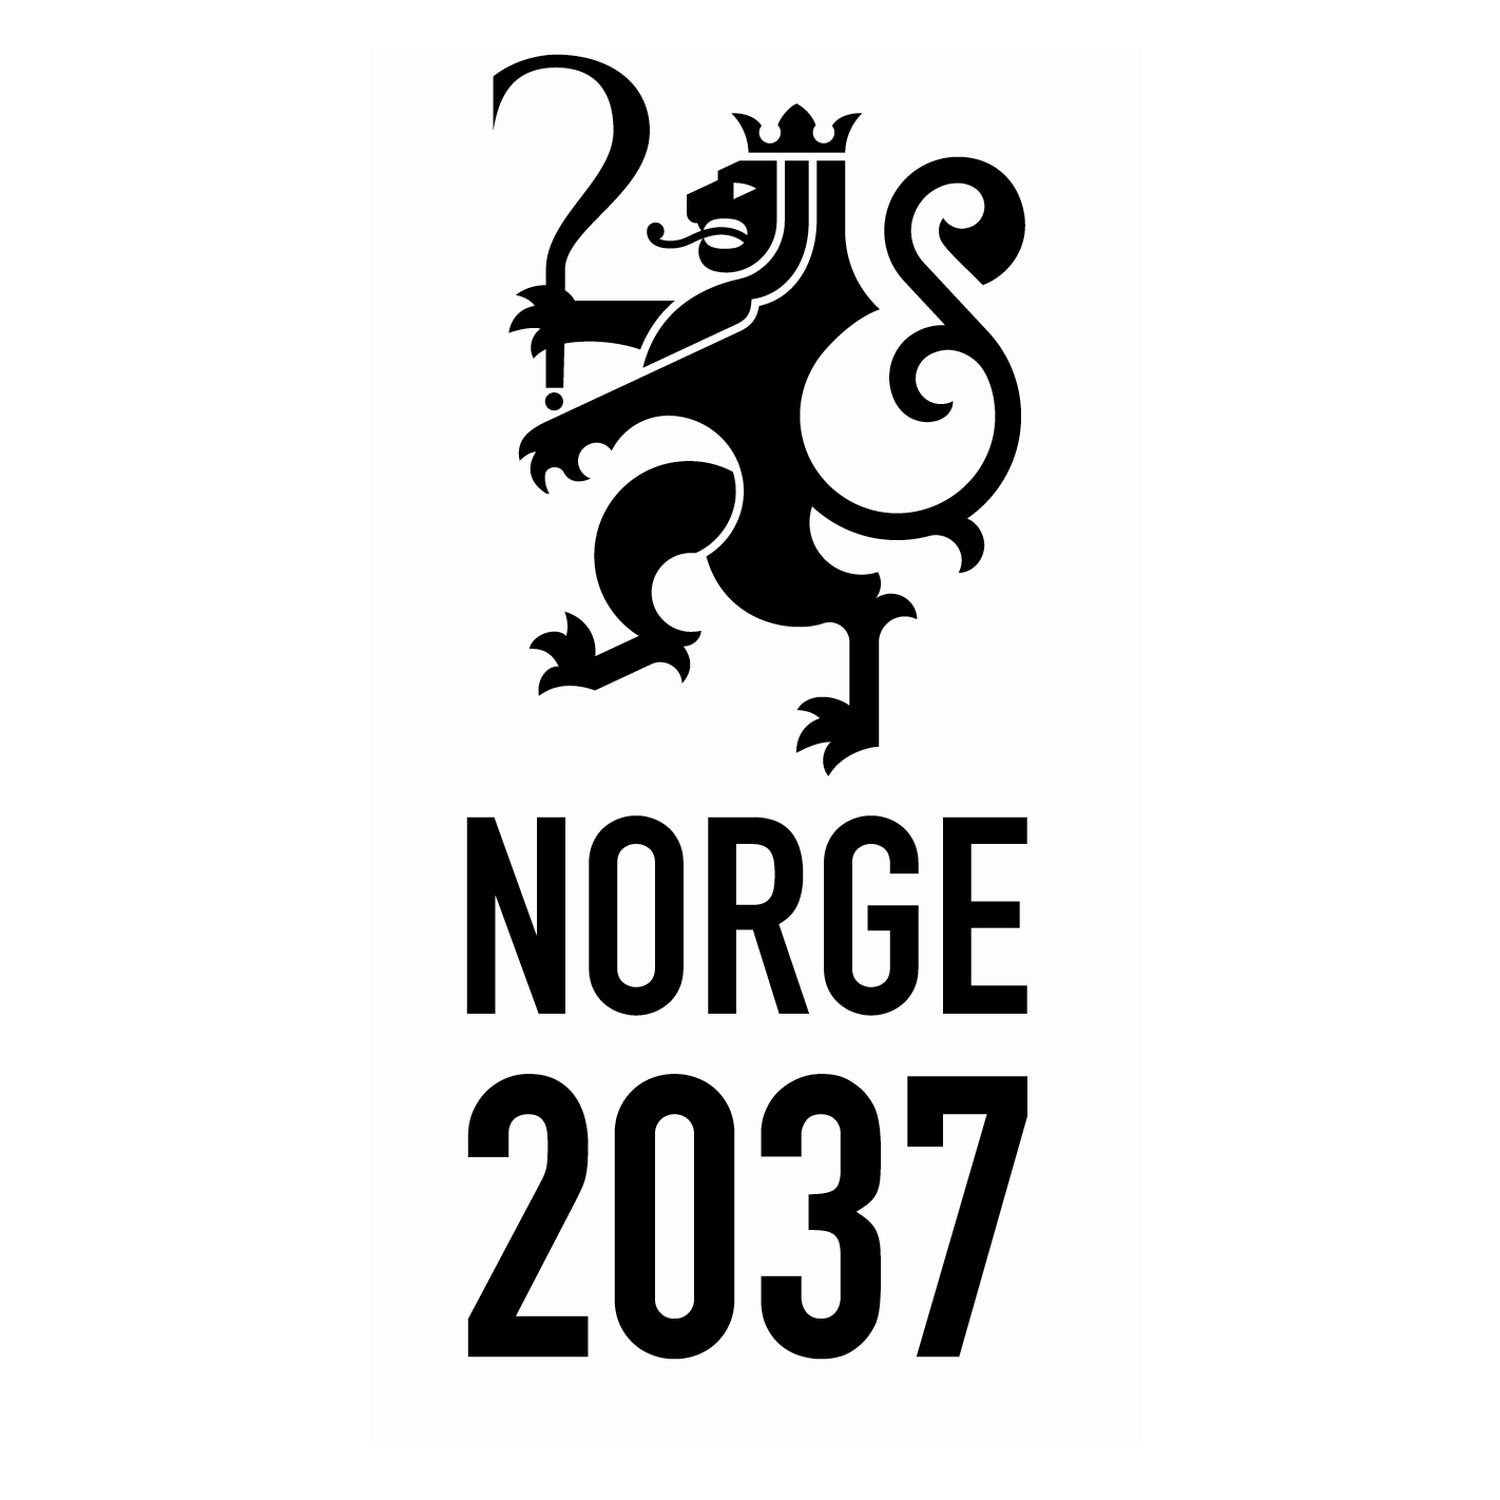 Norge 2037